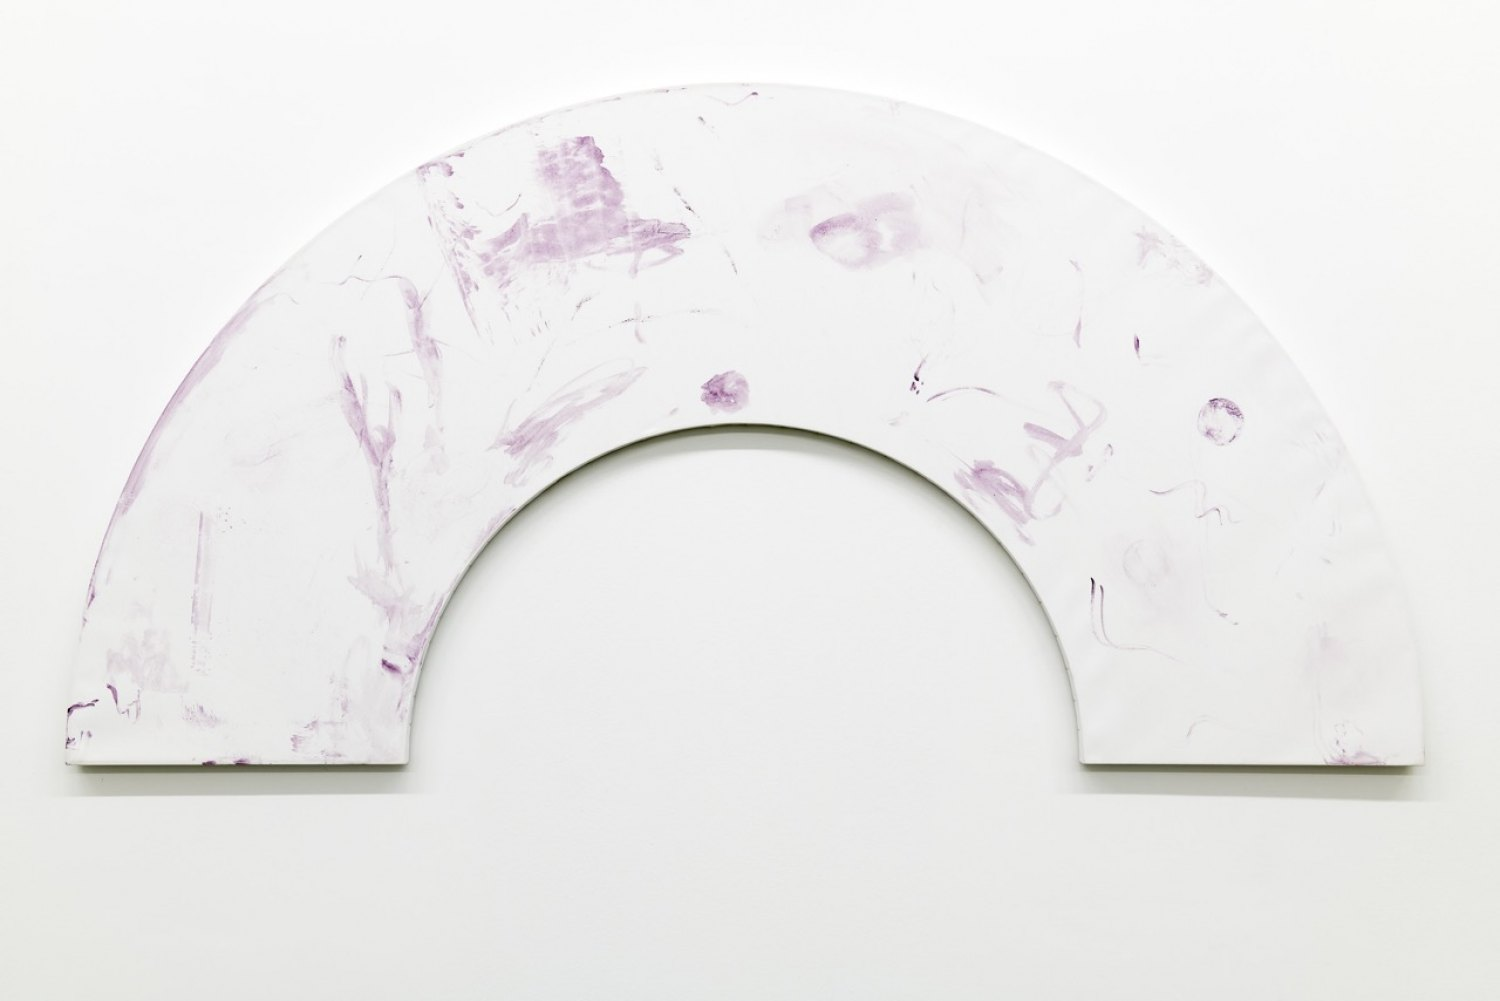 Fan, 2020, Tyrian purple on canvas, 218 x 109 x 2.5 cm